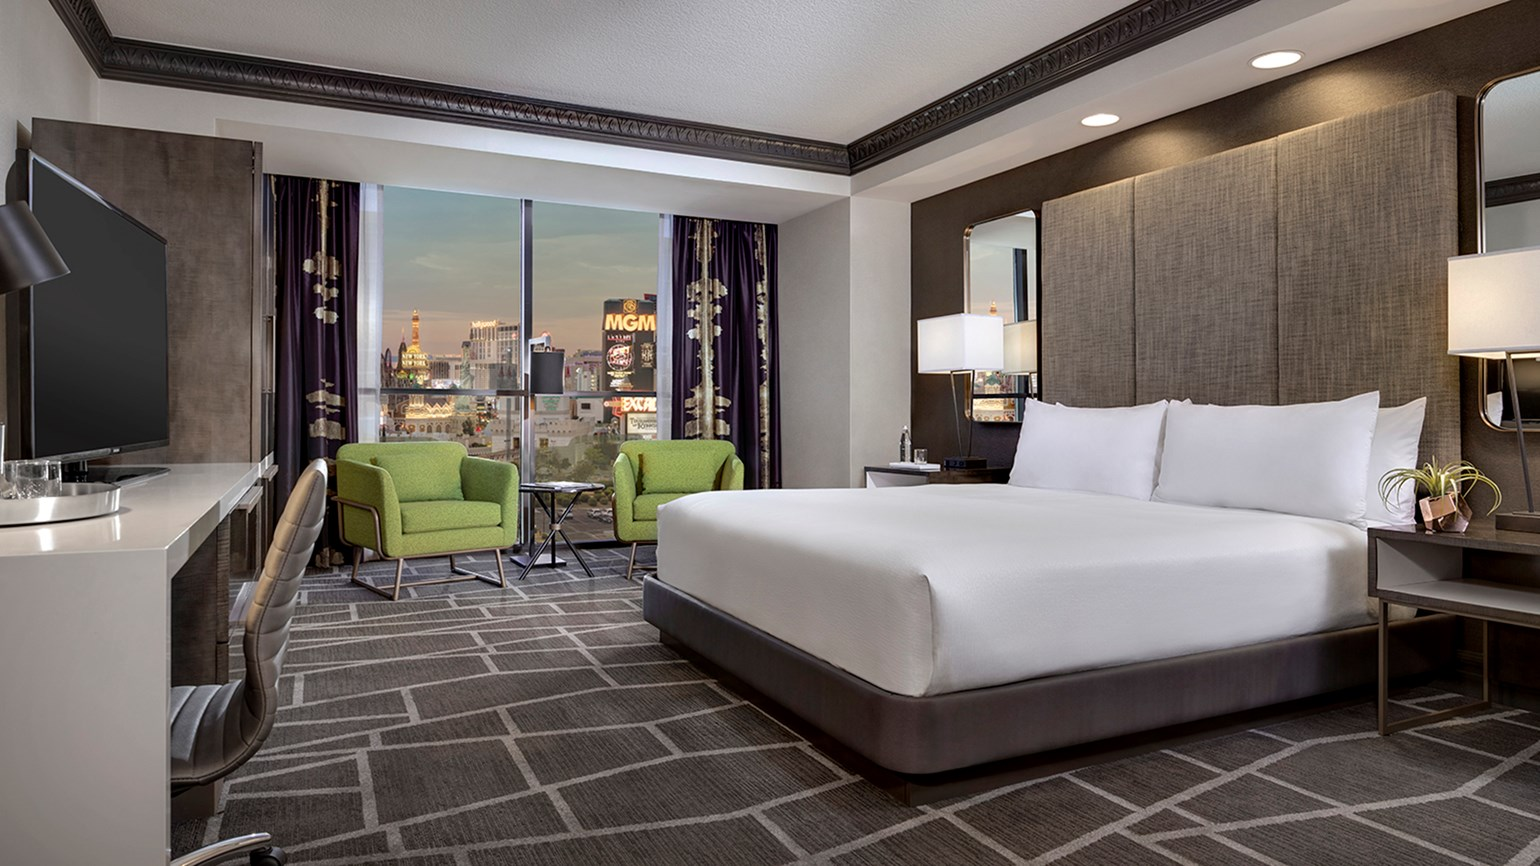 Luxor remodeling 1,700 hotel rooms